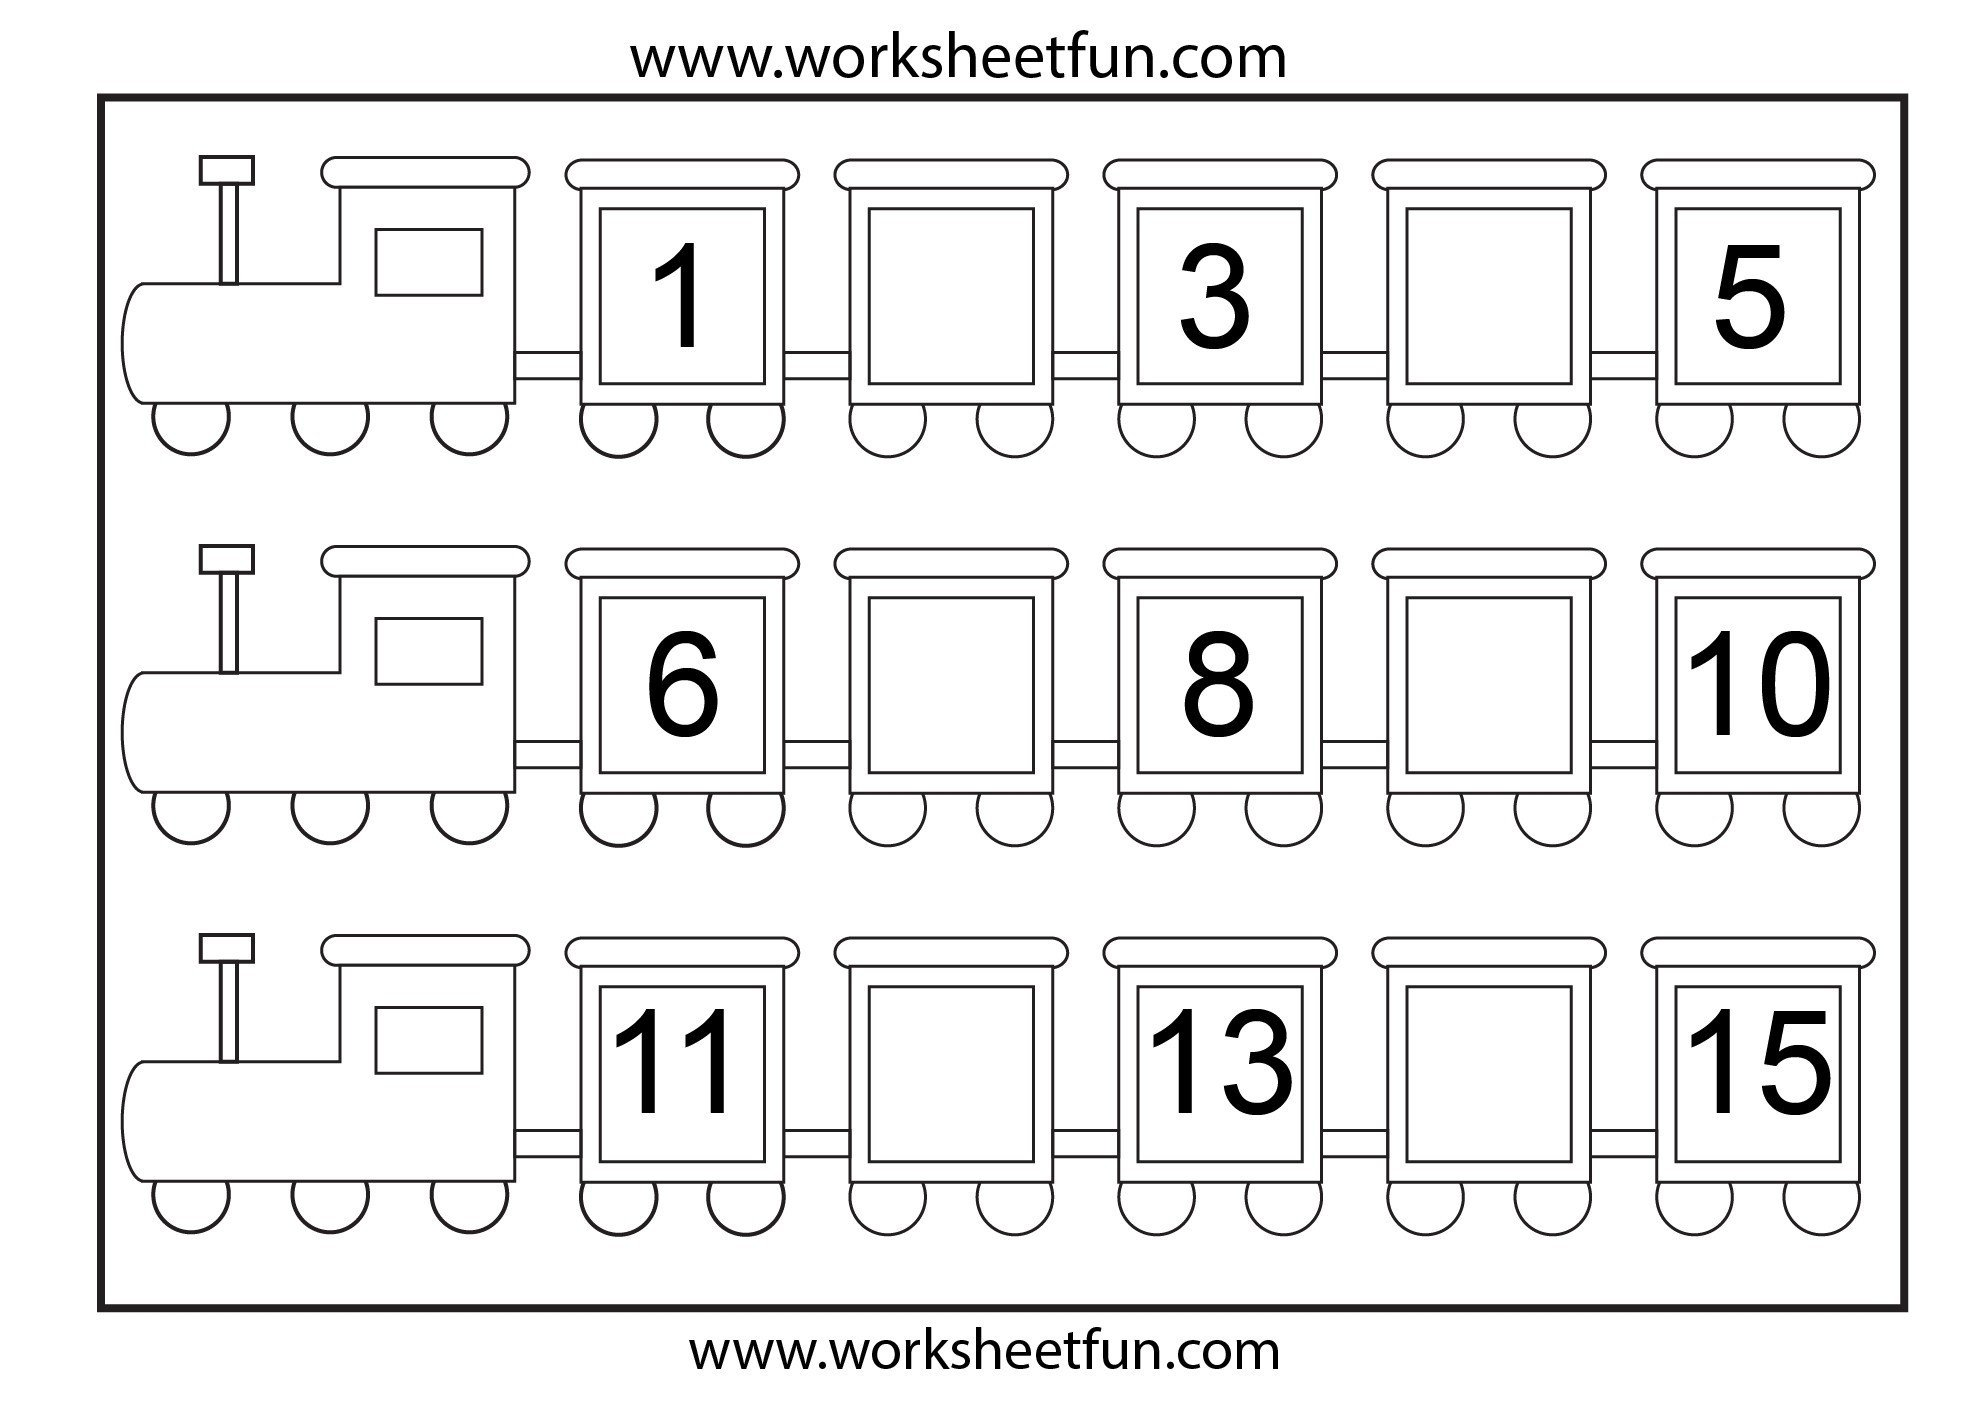 fill in the missing number worksheets worksheet for kindergarten 1 fresh kindergarten worksheets missing numbers best missing number